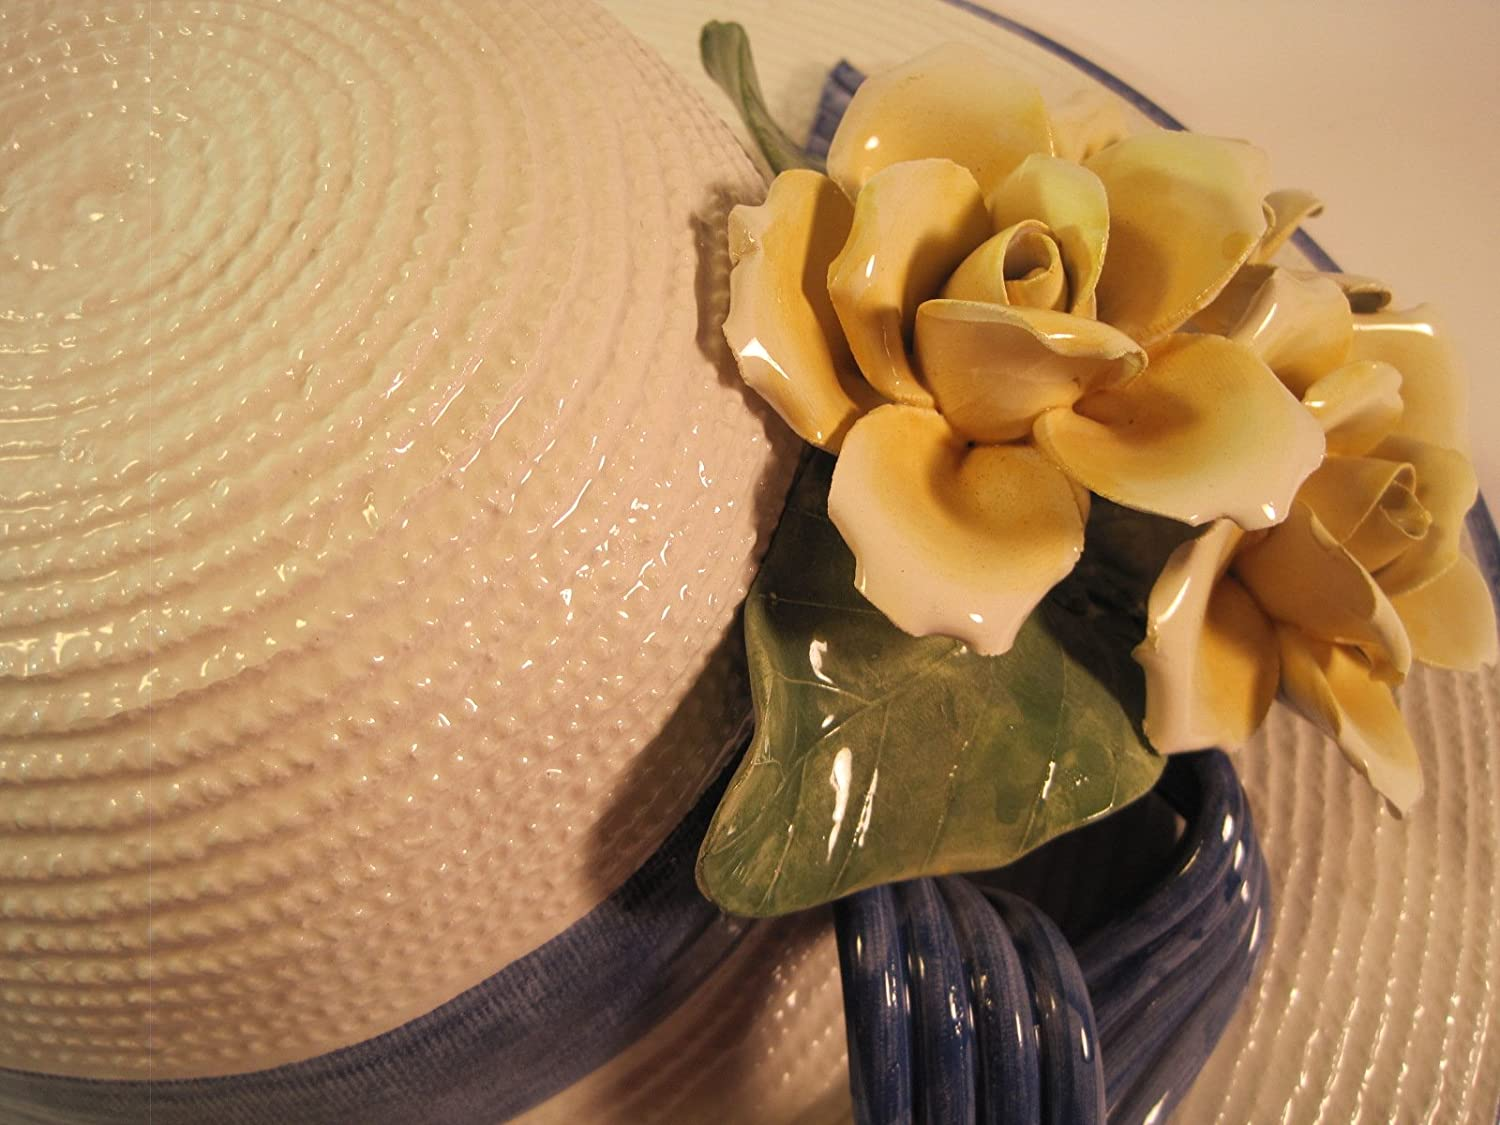 Amazon.com: Seymour Mann & Capodimonte Ceramic Straw Hat with ...